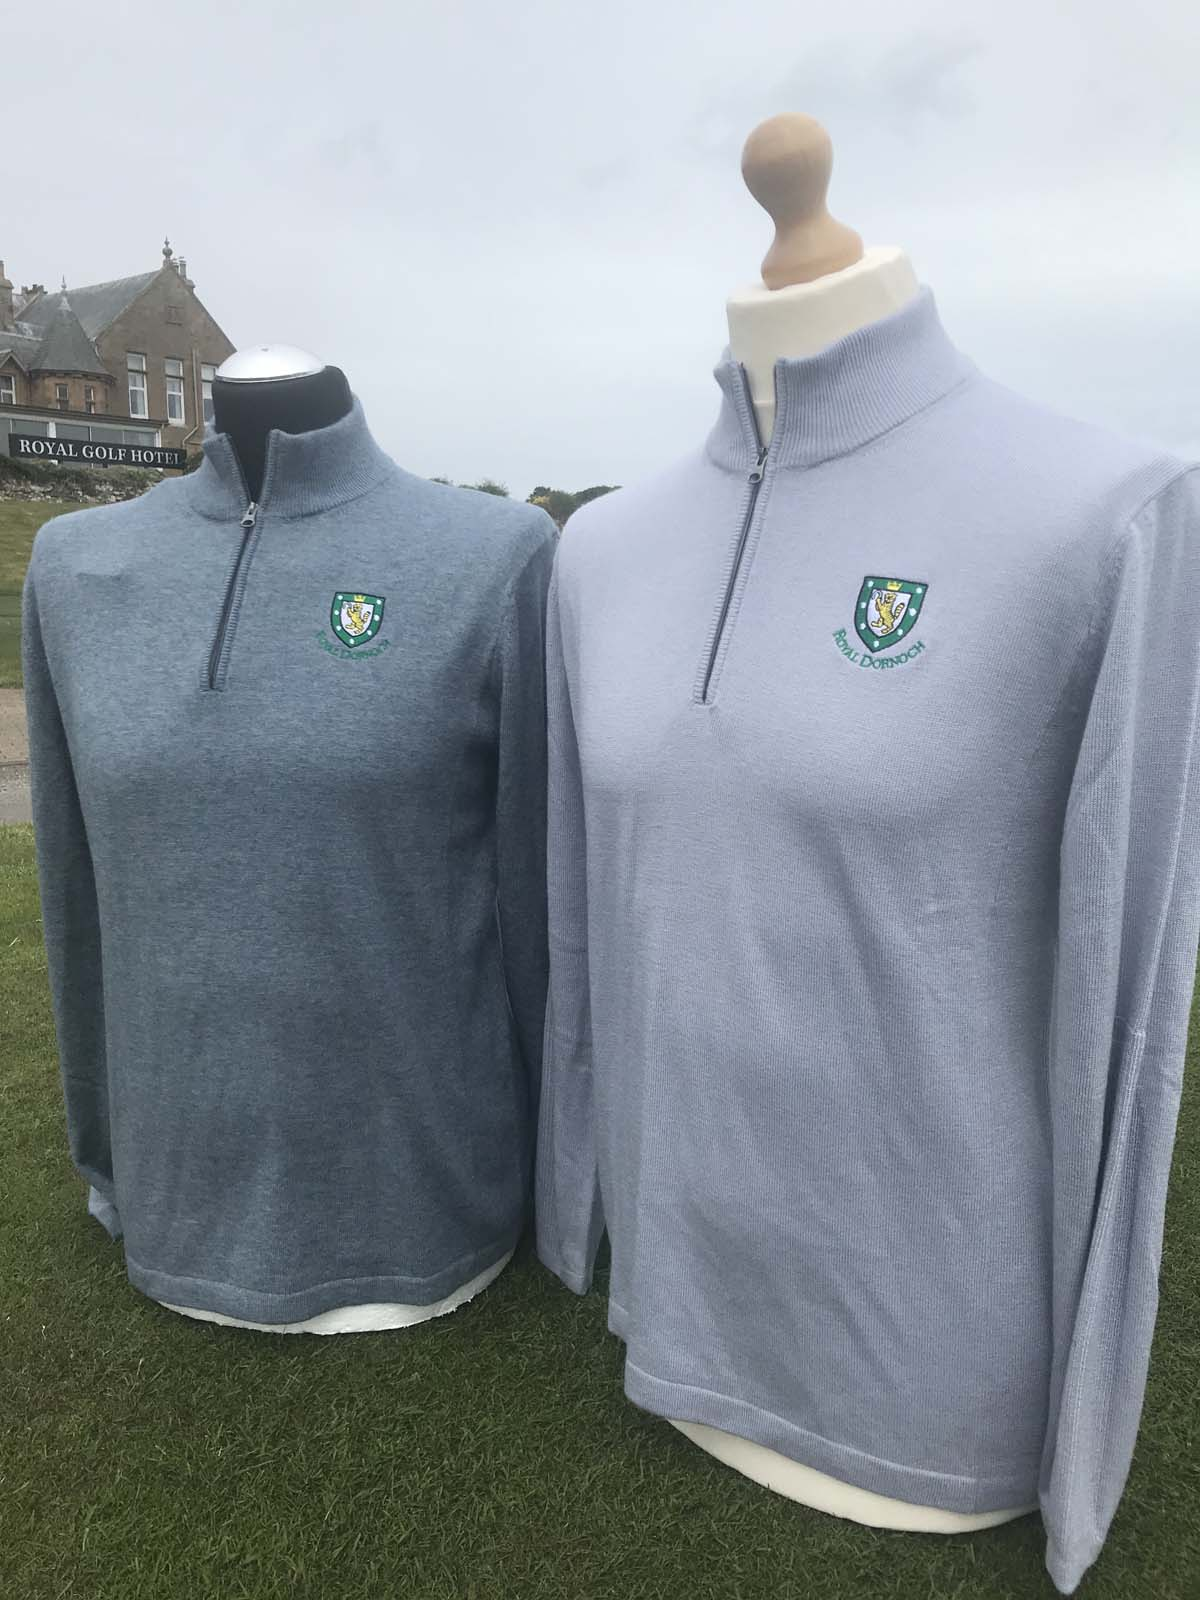 Cashmere Copake 1 4 Zip Royal Dornoch Pro Shop